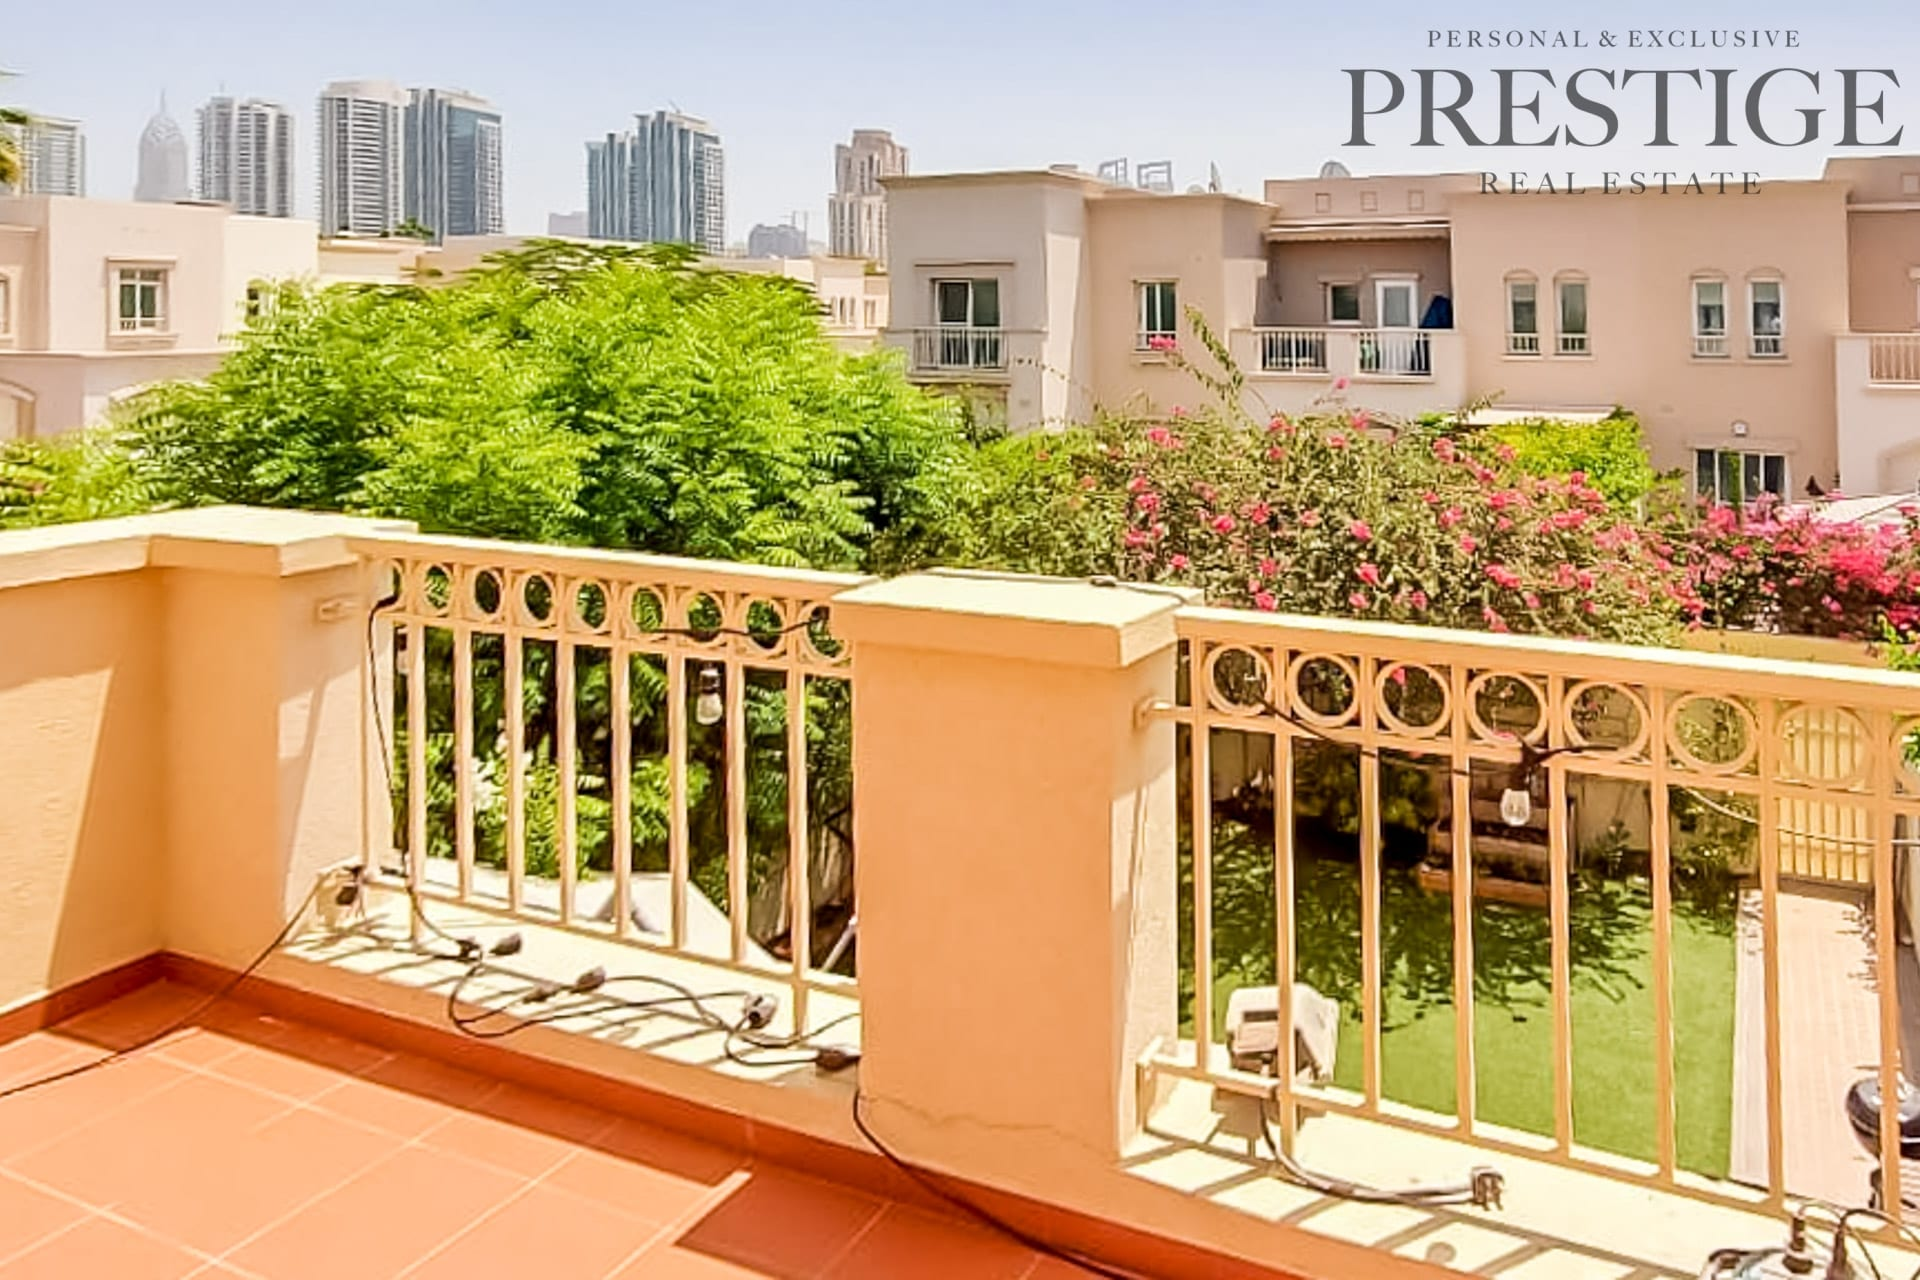 Maeen 3 - The Lakes Villa for Rent-Prestige Real Estate